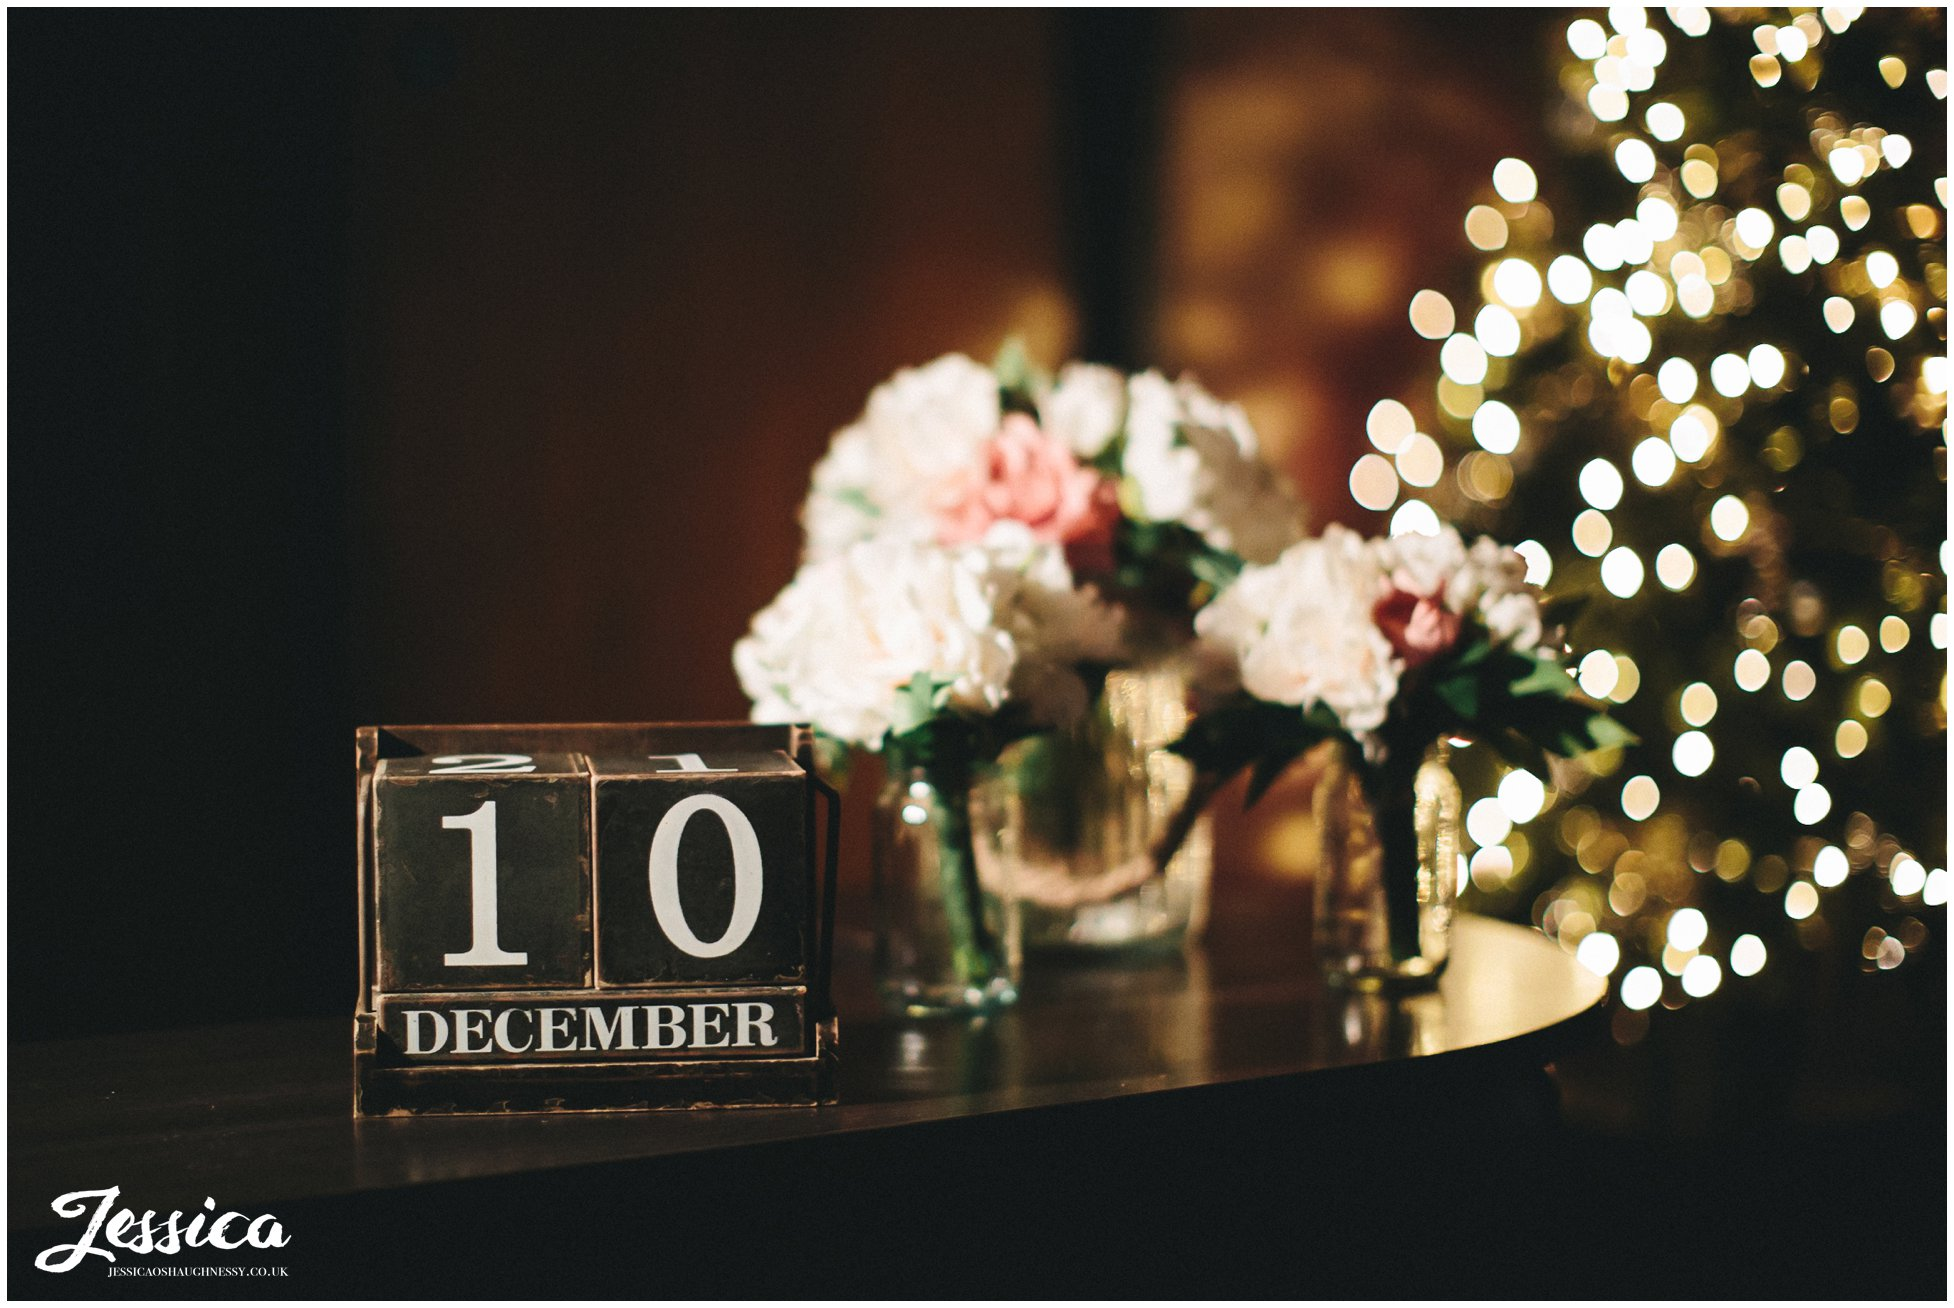 sign at on the 7th saying 10th december